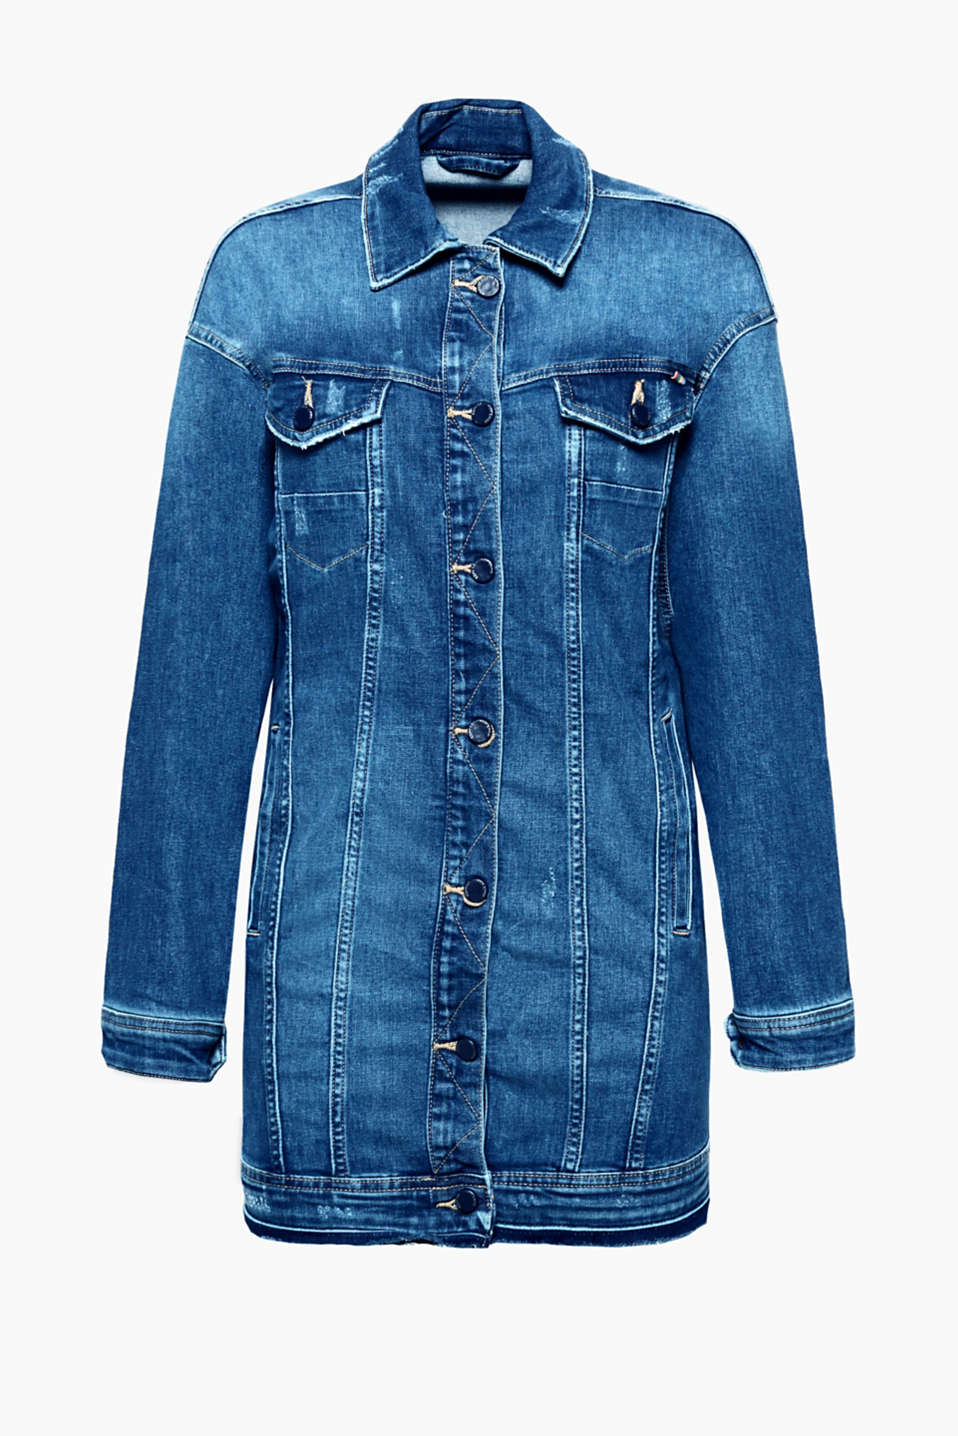 Feel good, look good, do good - the long design makes this denim jacket in recycled blended fabric a must-have!